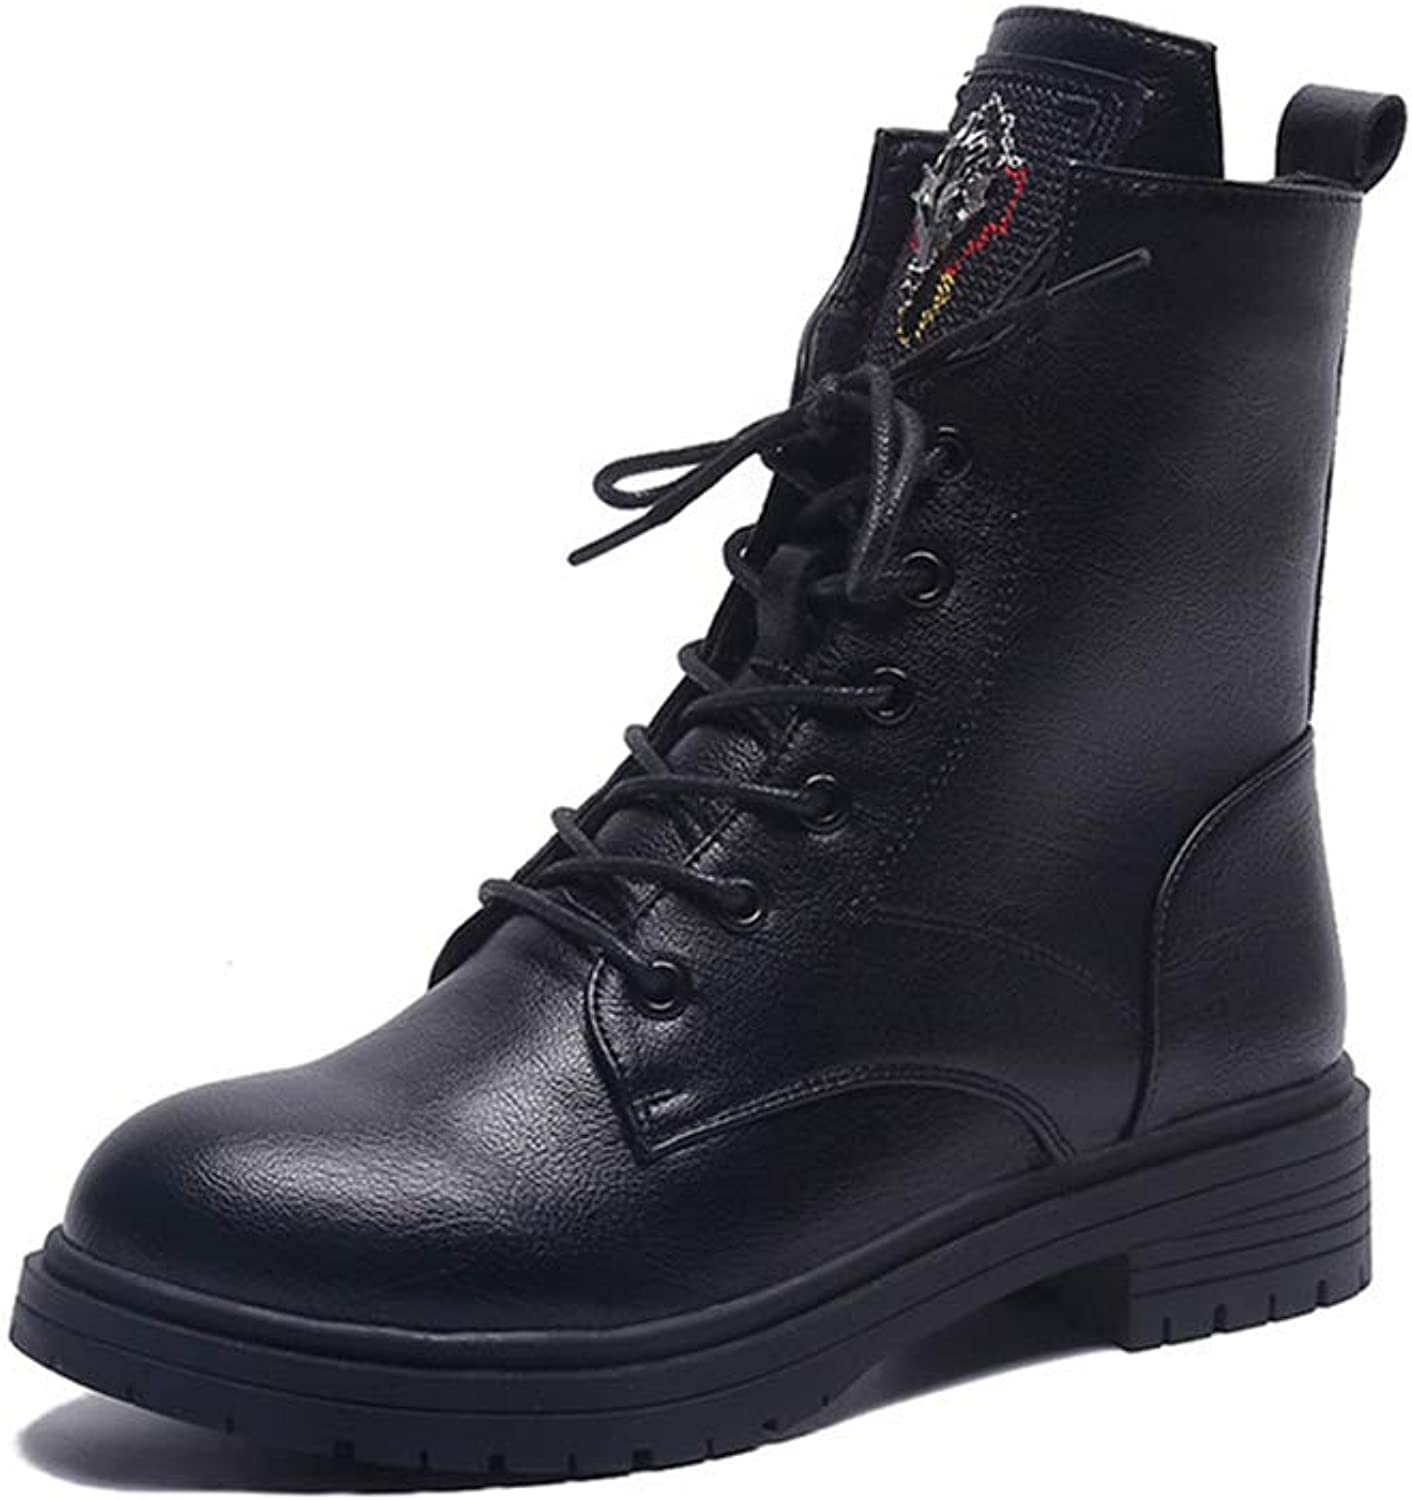 Womens Winter Boots Short Slip On Fold Down Combat Style Snow Booties